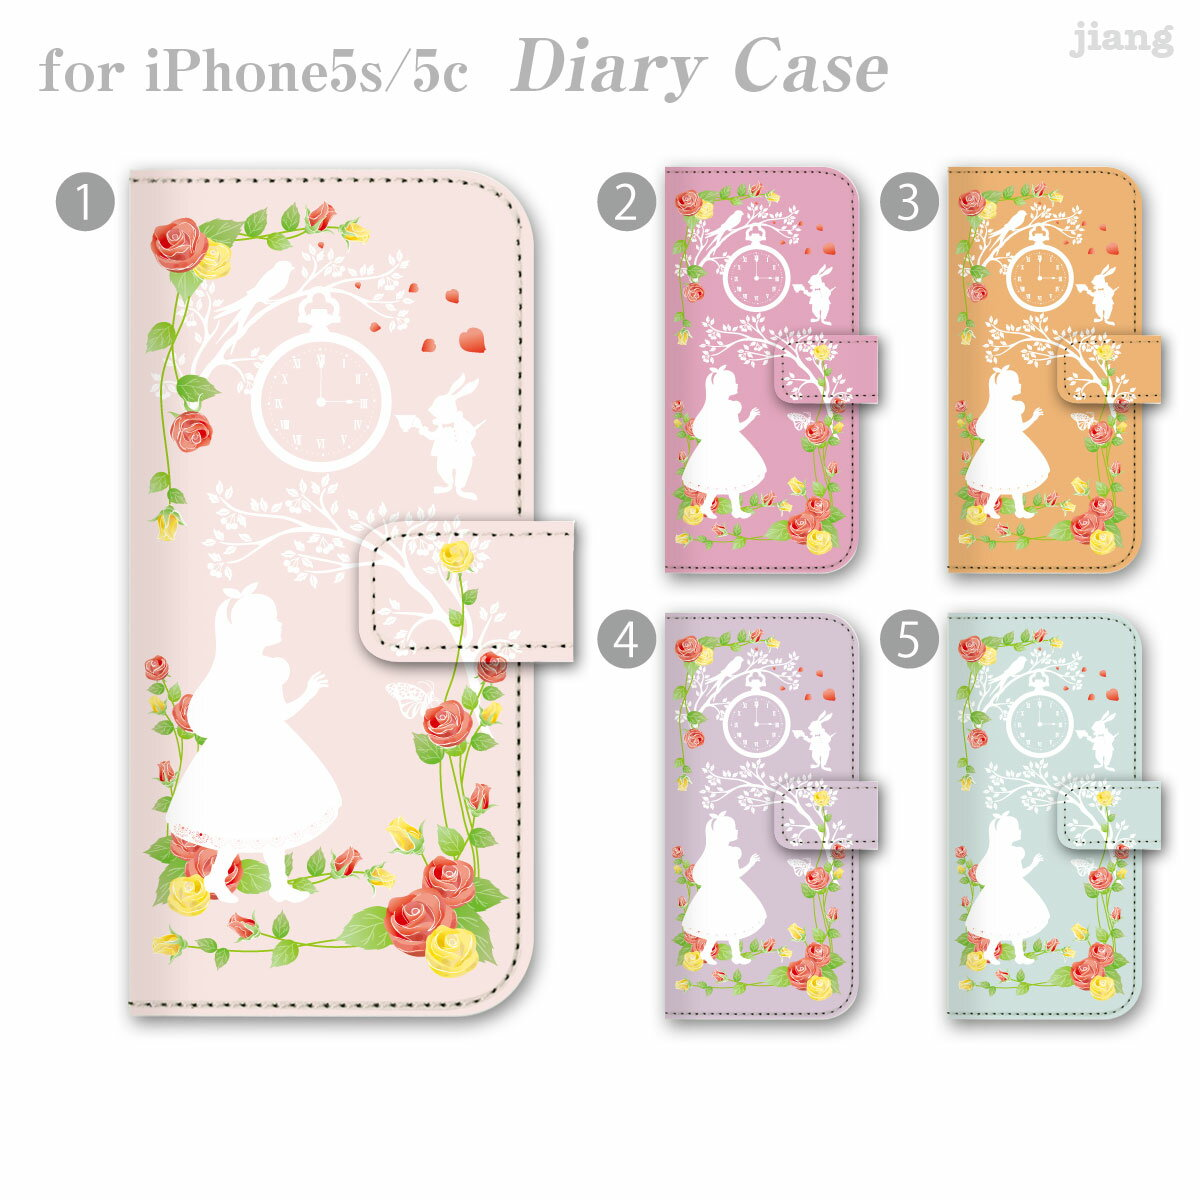 スマホケース 手帳型 全機種対応 手帳 カバー レザー iphone5c ケース イラスト iPhone7 iPhone6s iPhone6 Plus iPhone SE iPhone5s Xperia X Performance SO-04H Z5 Z4 Z3 A4 SO-02H SO-01H SOV33 aquos SH-04H SHV34 Xx3 arrows F-03H galaxy アリス 08-ip5-ds0115-zen2